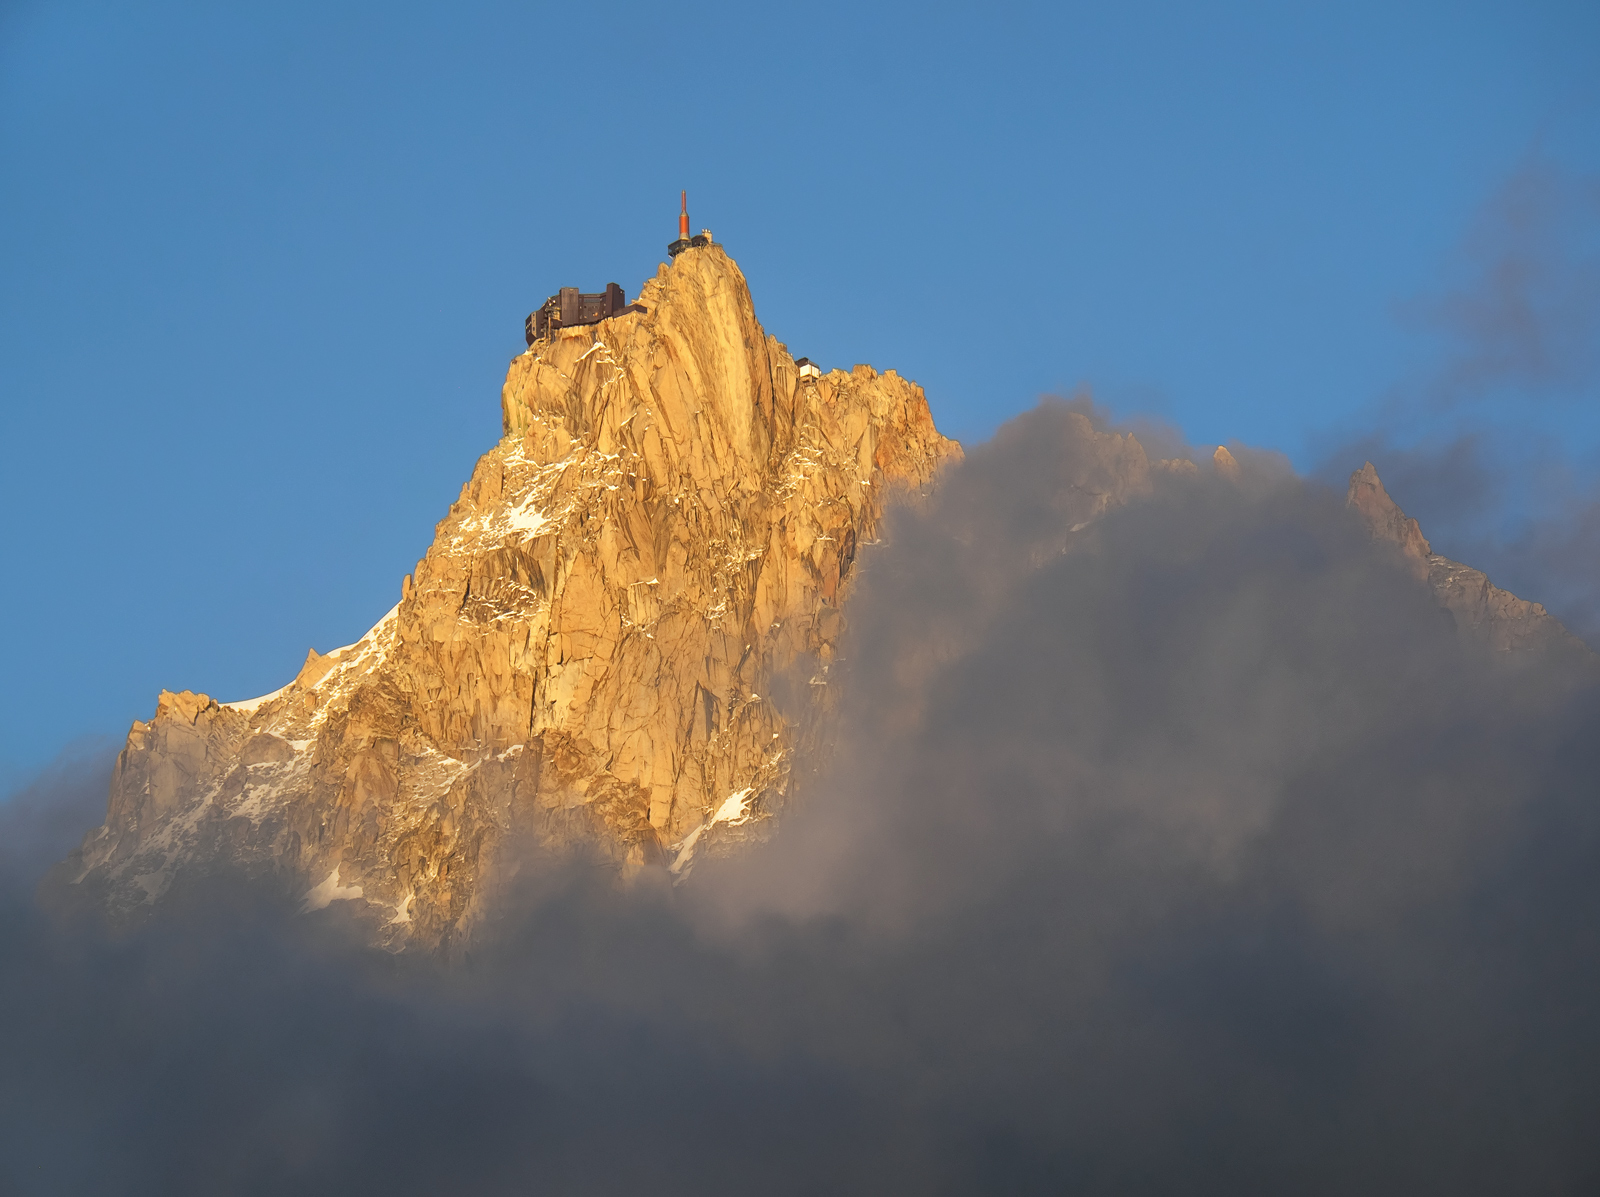 Sneak Preview, Les Houches, Chamonix, France, rare, moment, clarity, Aiguille Du Midi, exposed, peak, summer, traces, sn, photo